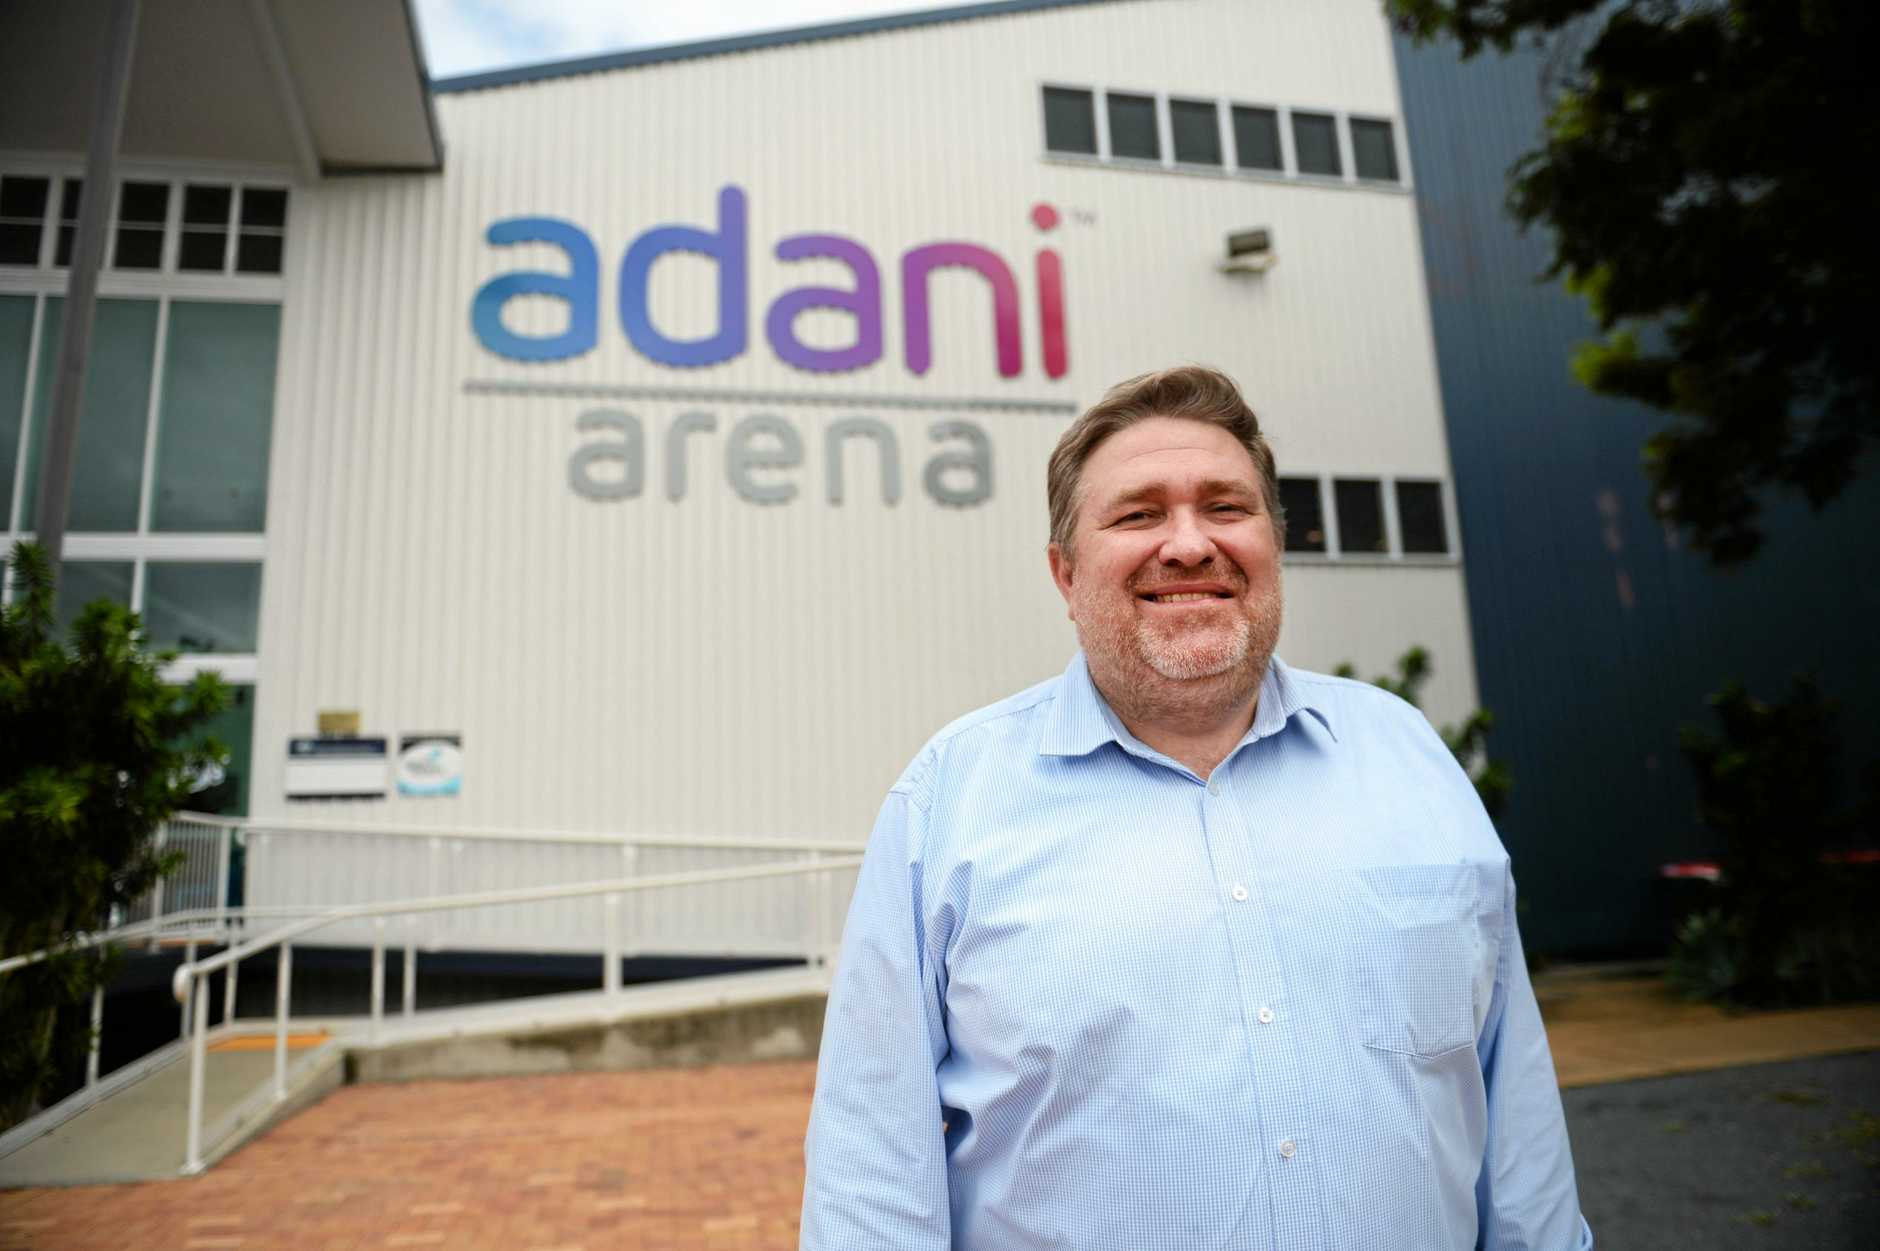 PARTNESHIP: Adani Mining CEO Lucas Dow at the newly renamed Adani Arena was excited to announce a new partnership with Rockhampton Basketball.